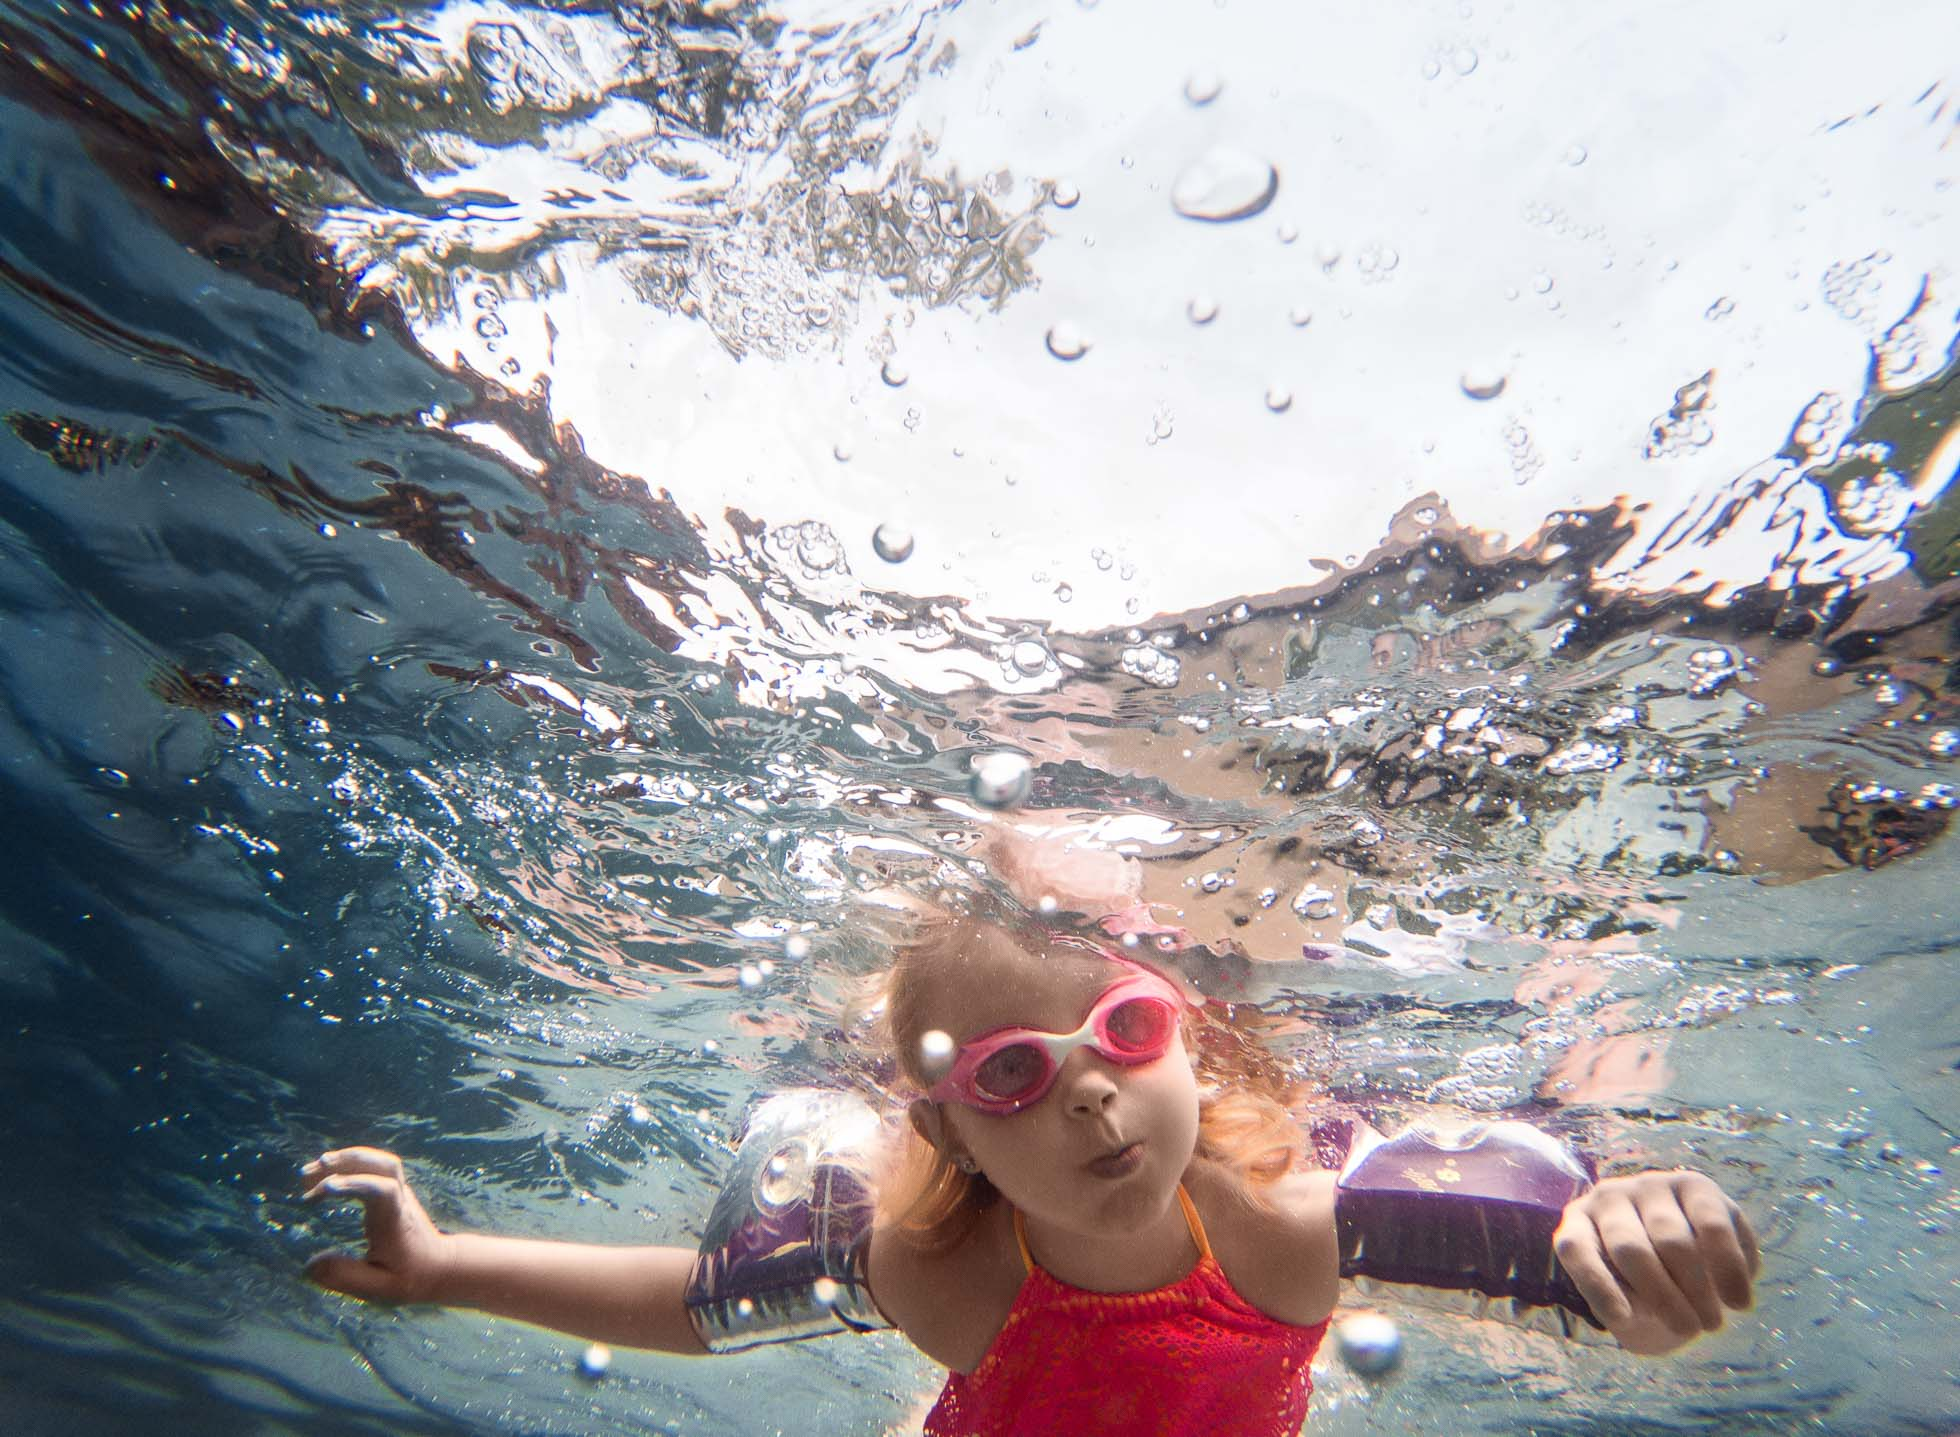 03 peek a boo underwater gopro hero 5 black edmond ok photographer oklahoma city natural light photographer kate luber photography